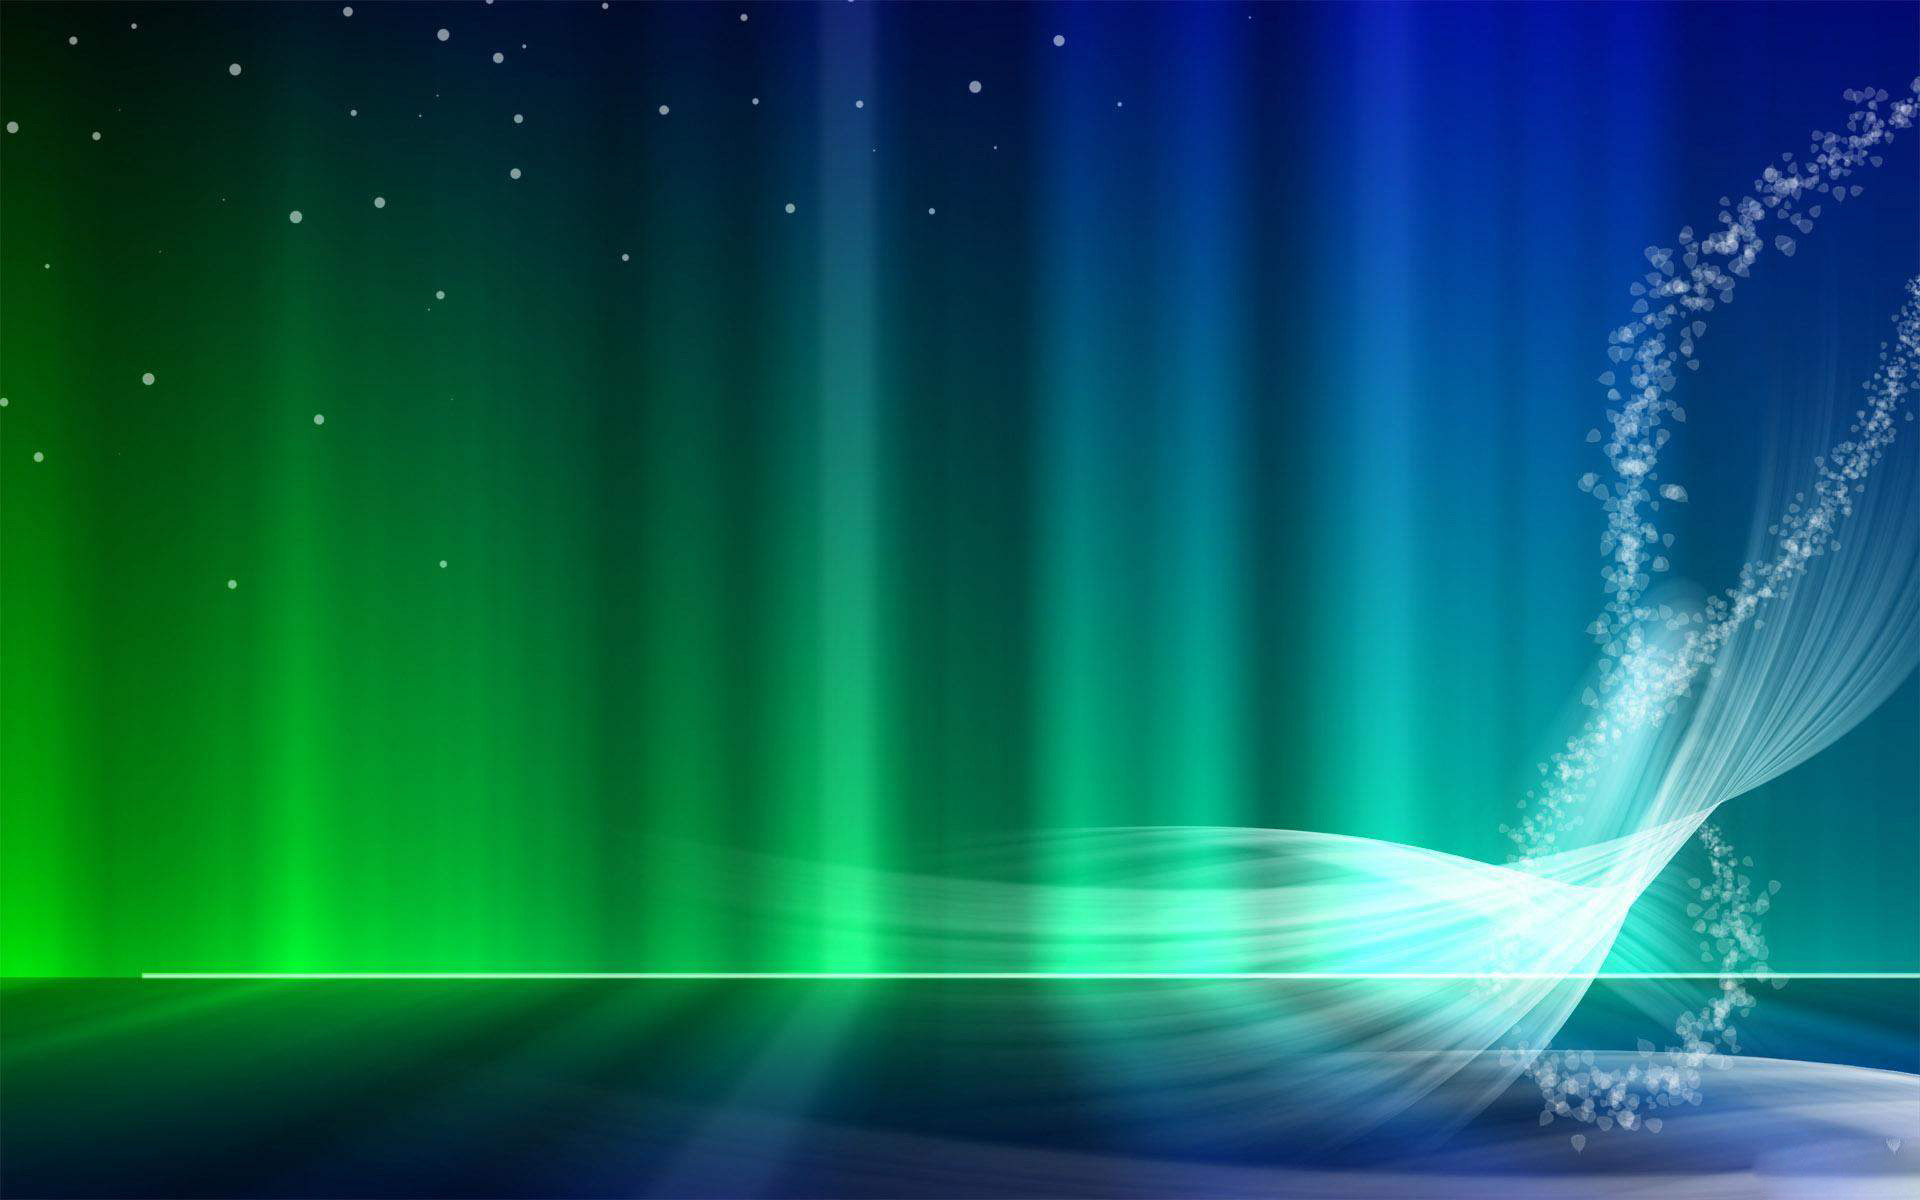 Live Backgrounds For PC Free Download PixelsTalk Net Windows Live  Backgrounds For PC